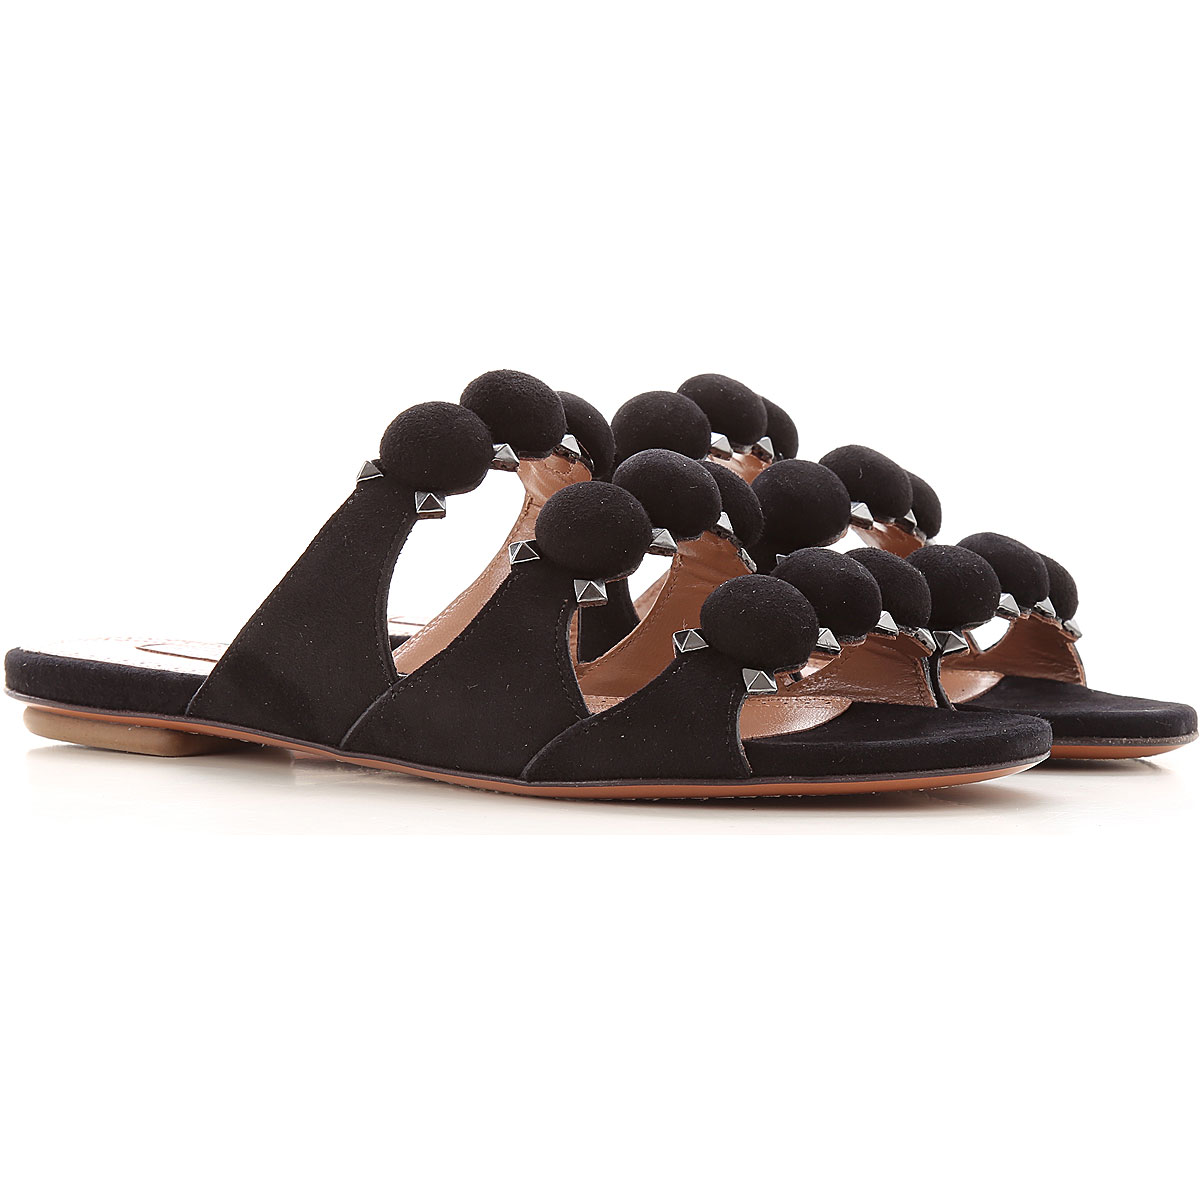 Alaia Sandals for Women On Sale, Black, Suede leather, 2019, 10 6 7